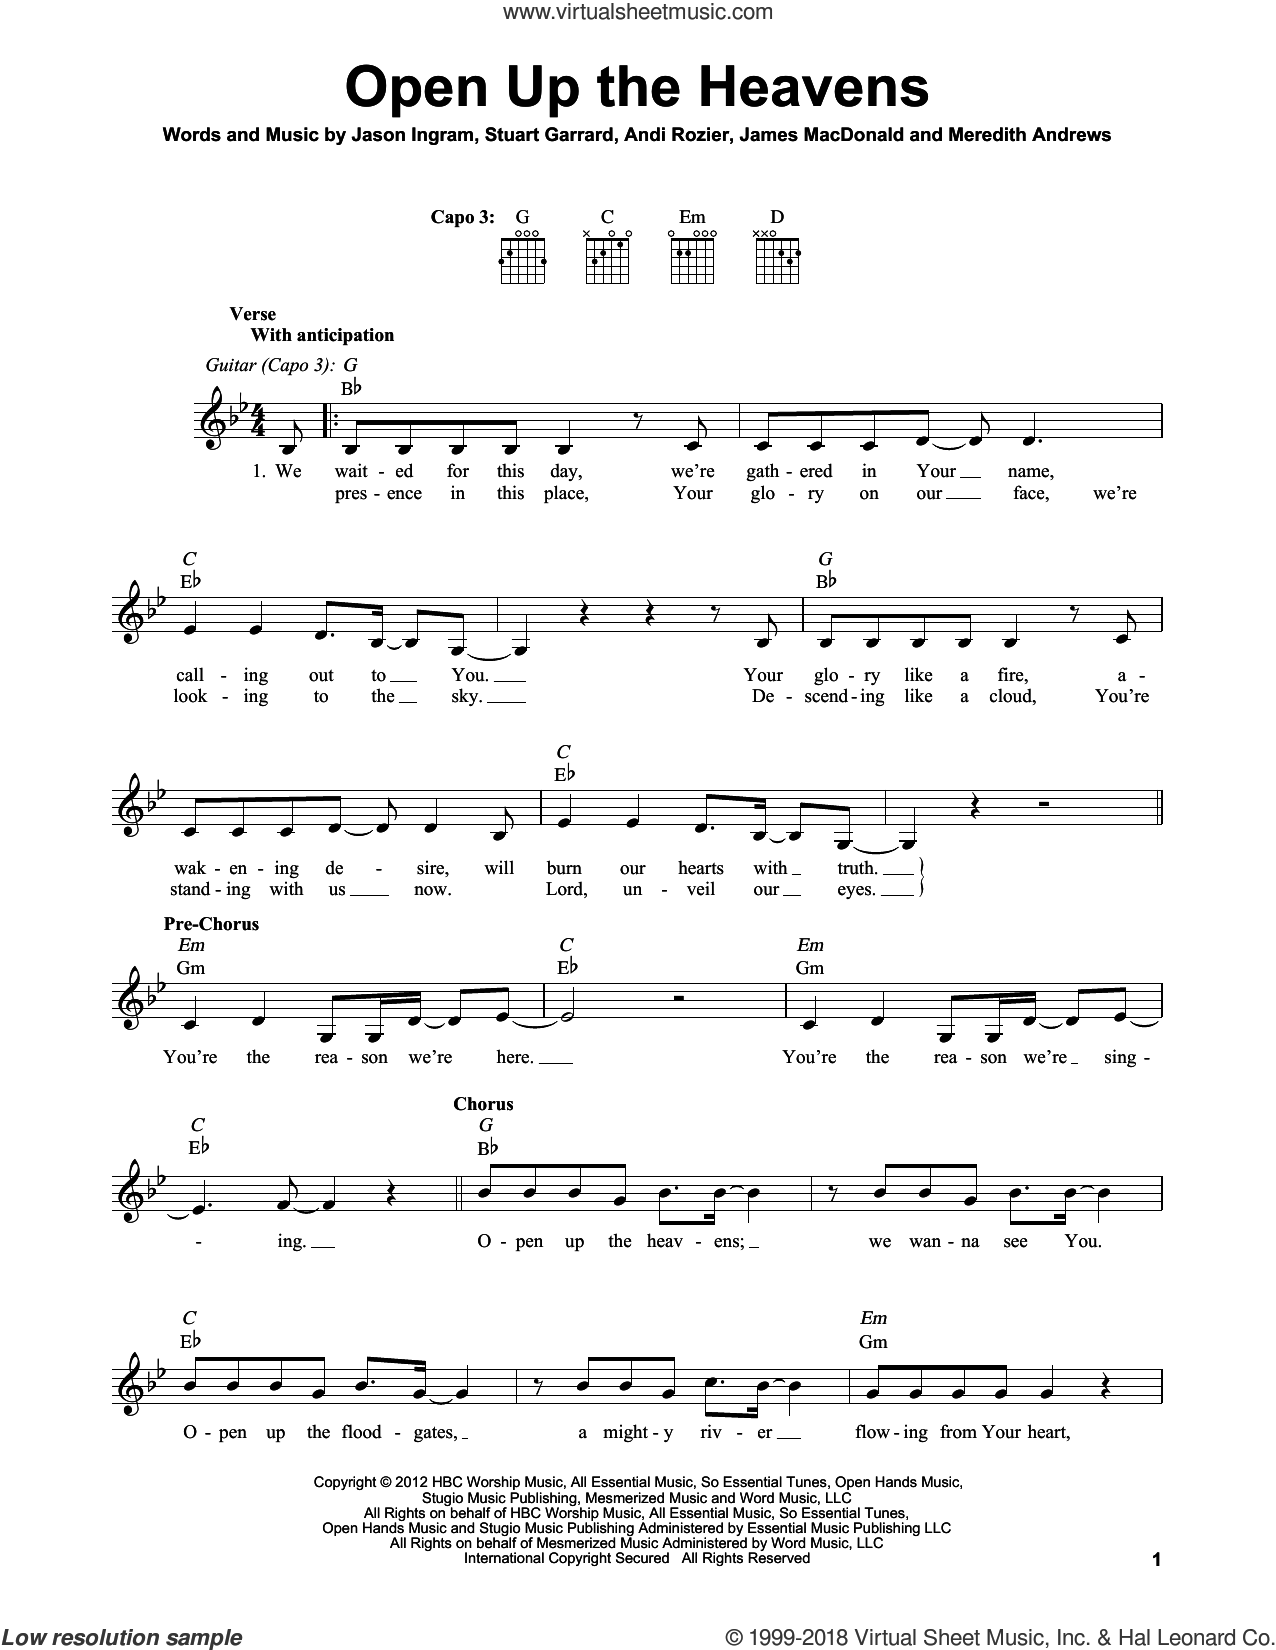 Open Up The Heavens sheet music for guitar solo (chords) by Meredith Andrews, Andi Rozier, James MacDonald, Jason Ingram and Stuart Garrard, easy guitar (chords)